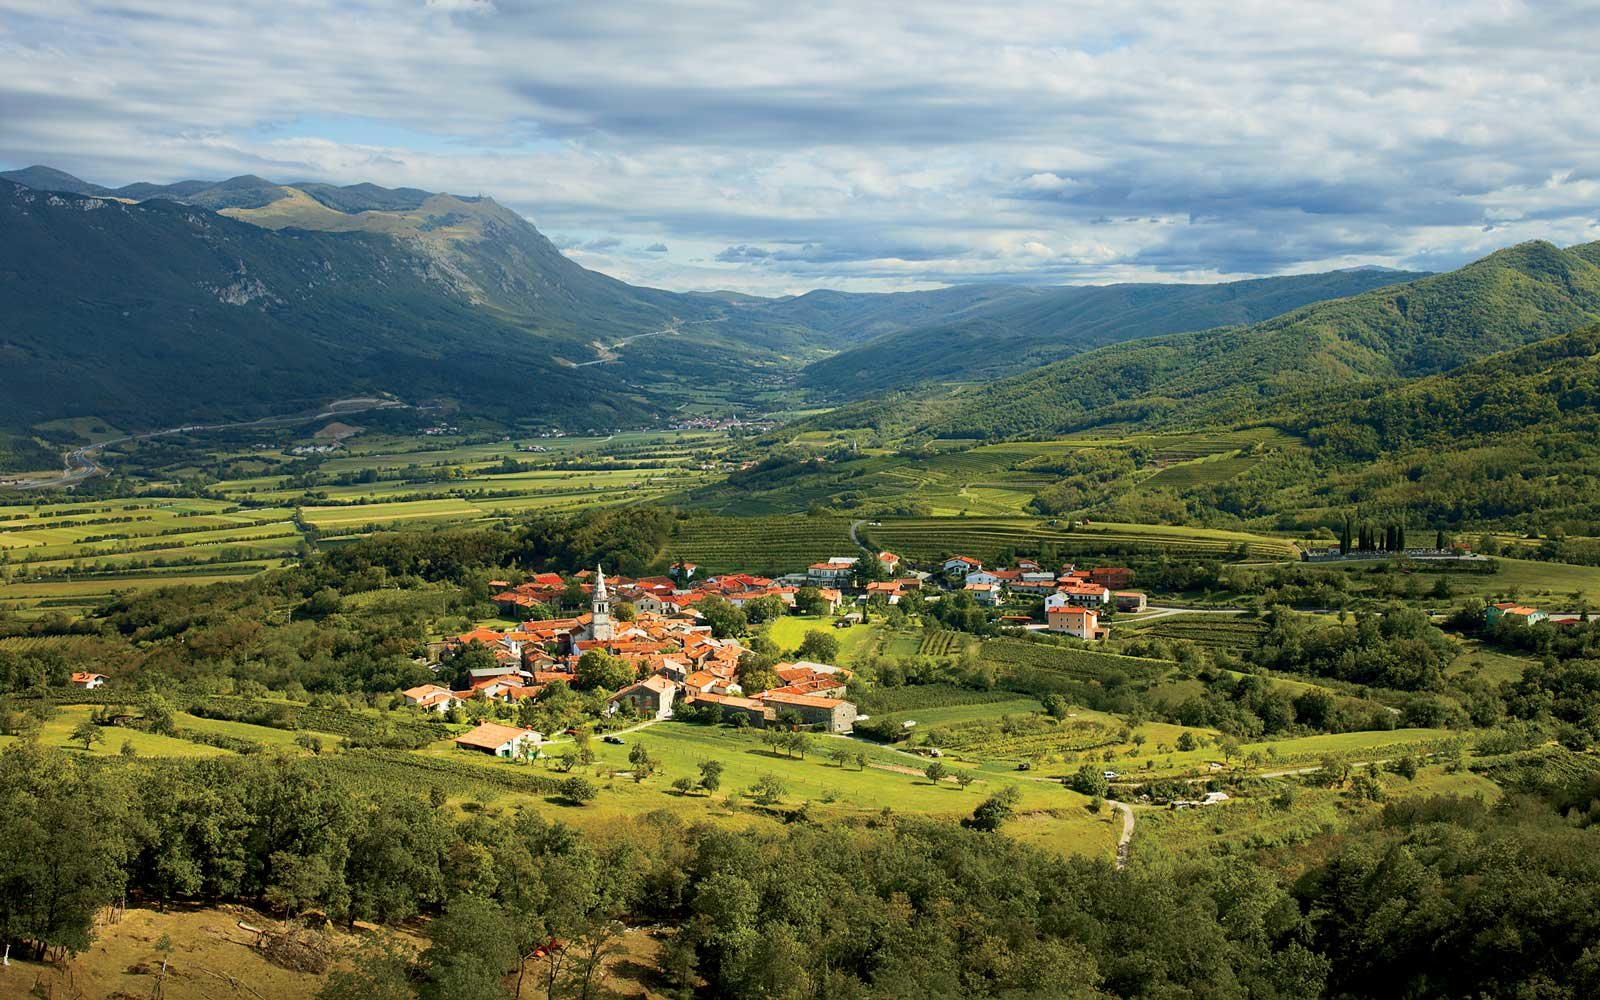 Village of Goce located at the Vipava valley, Slovenia